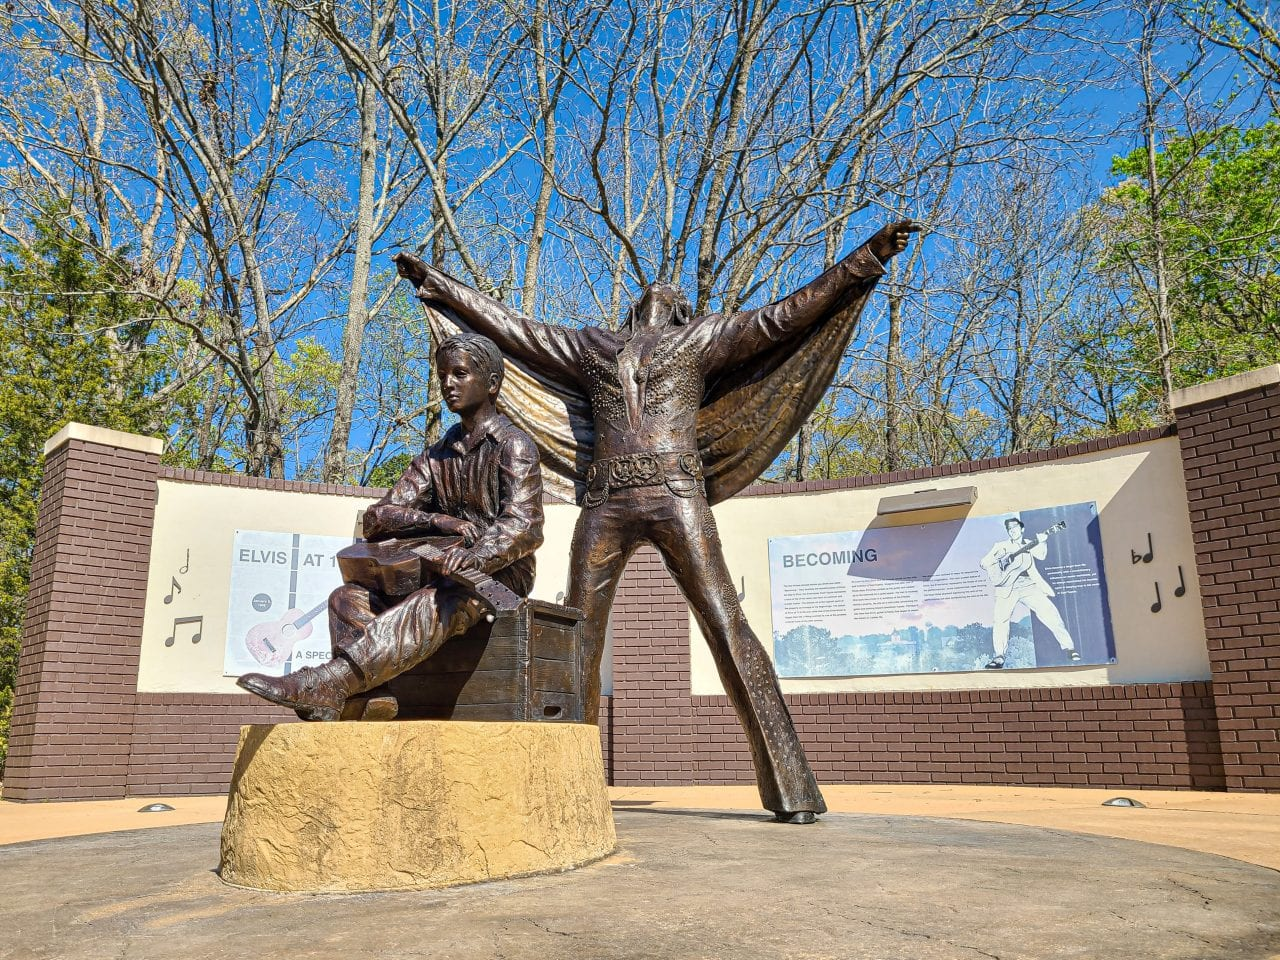 Becoming Statues at the Elvis Birthplace